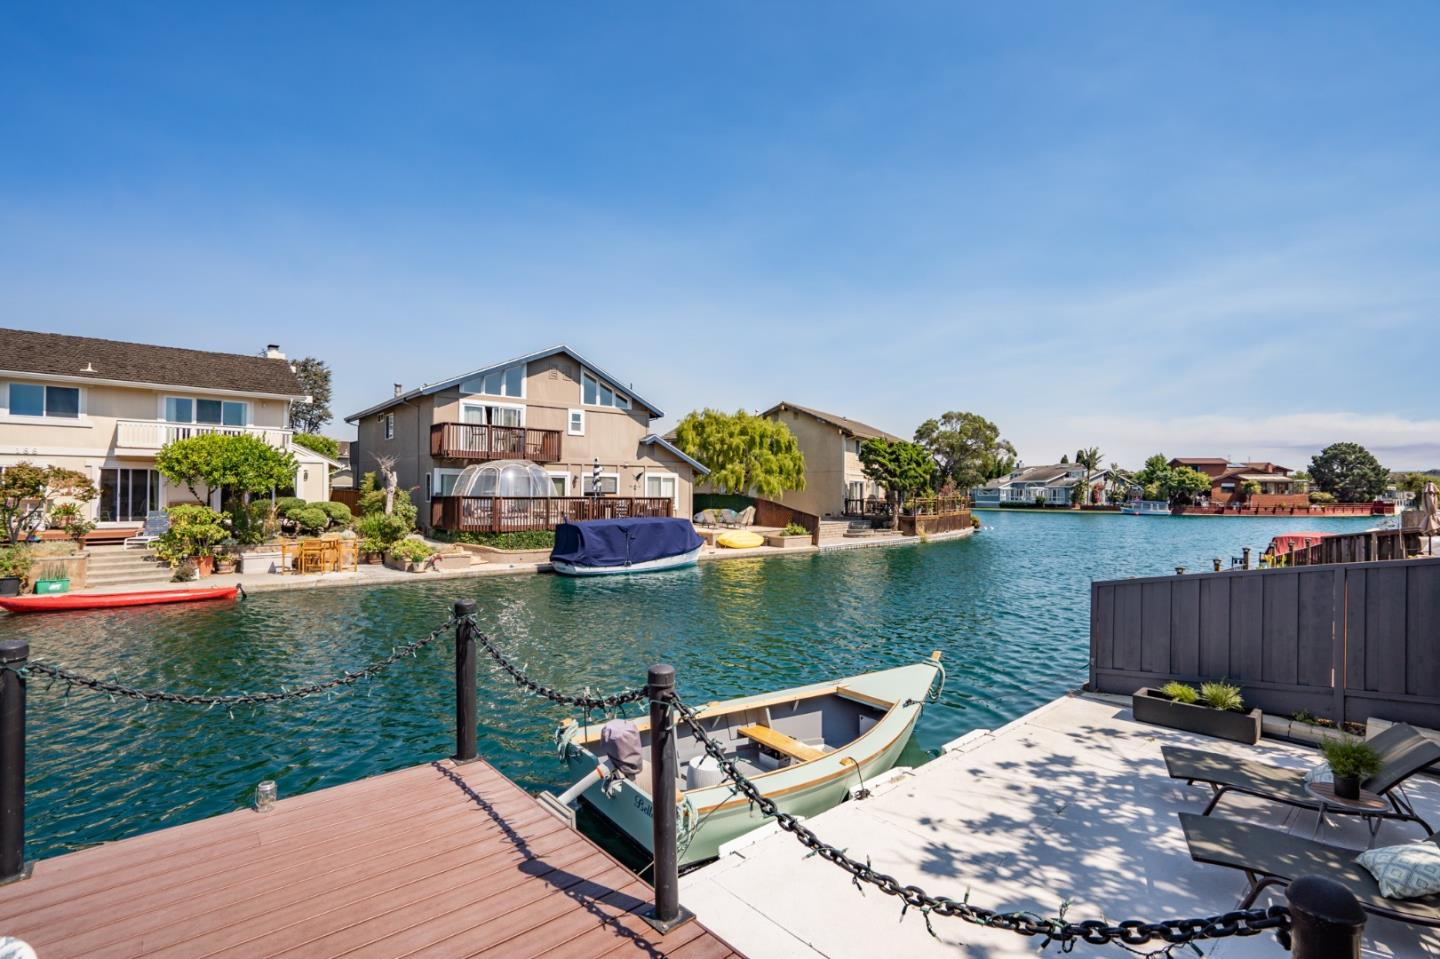 This waterfront home has a spacious single level floor plan. Large windows & fantastic water views & boat deck w/ boat. French doors open to the back yard & patio for a flowing floor plan. The open living, family & dining rooms create an organic space for entertaining, along w/ the stunning chefs kitchen remodeled to today`s standards, including high-end appliances, contemporary custom cabinets & an over sized quartz island. Hardwood floors in all four bedrooms & 2.5 baths have been updated with a modern flair. The generously sized primary bedroom suite features water views & access to the rear deck, 2 separate wardrobe closets, Hunter Douglas blinds w/ black out shades, & a luxurious en-suite bath with over sized walk-in shower, 2 piece rain shower head, Ferrari red soaking tub, heated tile floors, dual sinks & LED Mirrors.  The backyard features a modern paver patio, beautiful mature magnolia tree, artificial turf, cactus garden, along w/a fabulous Trex deck & concrete boat deck.